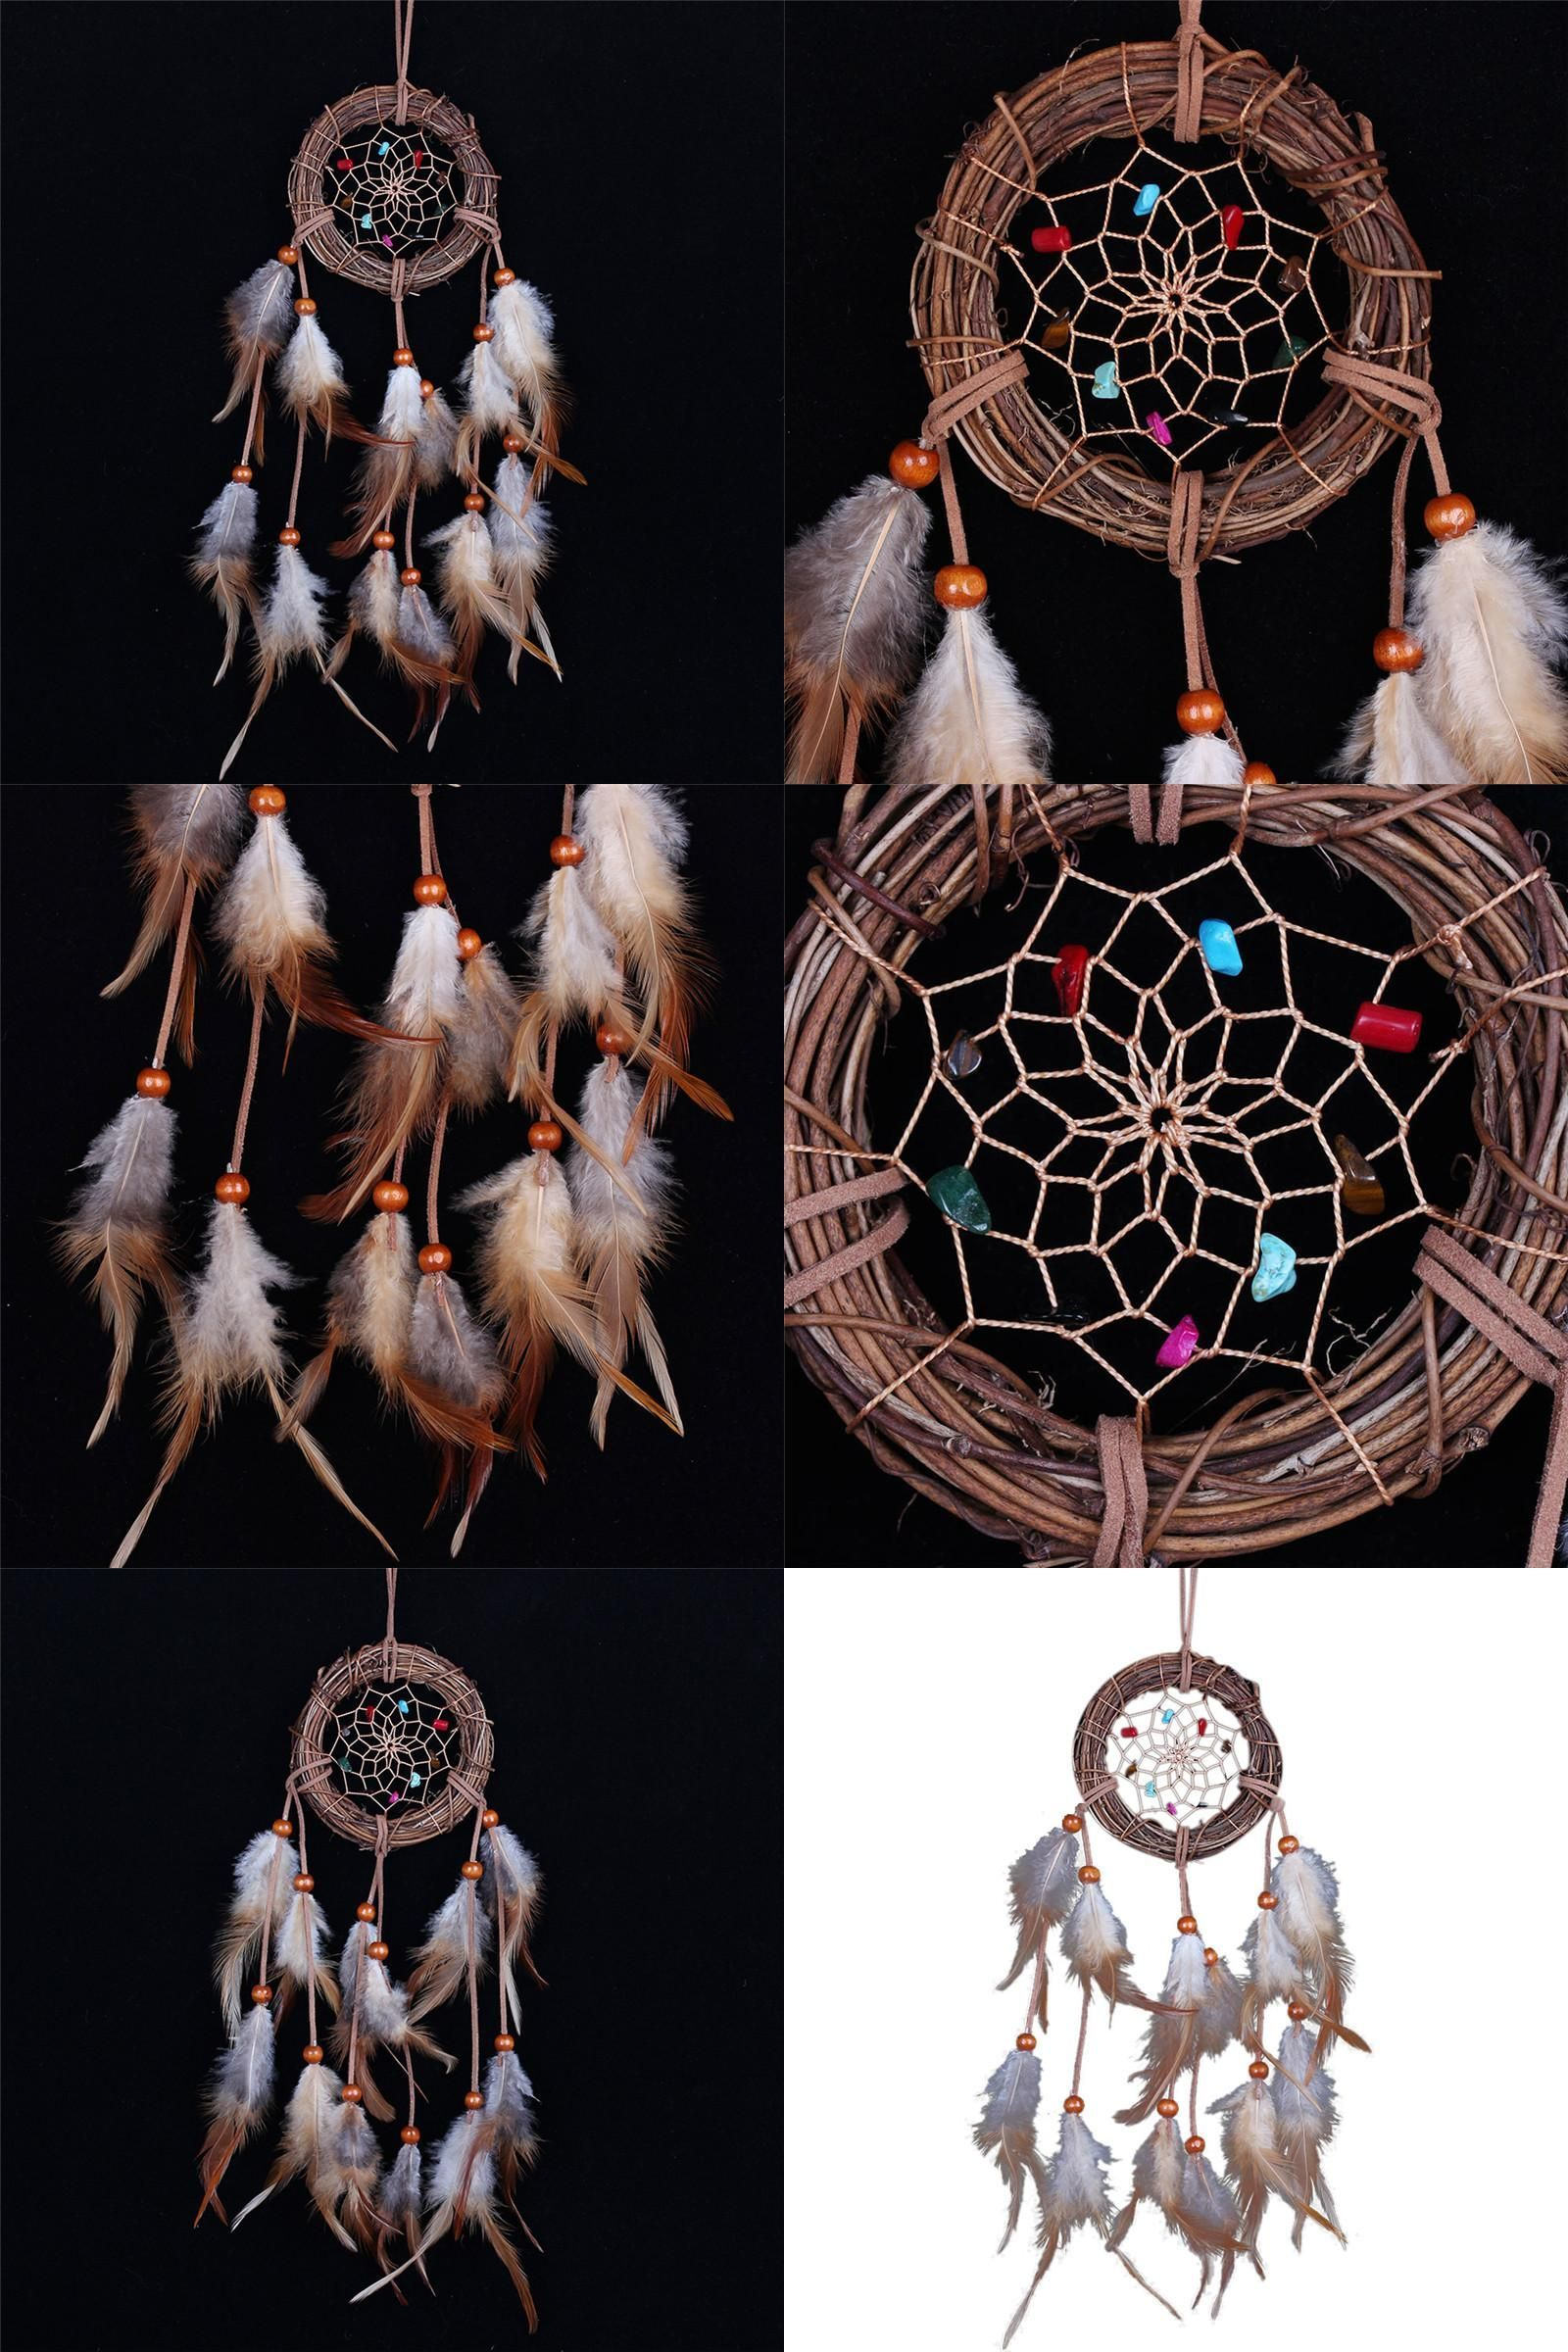 Cheap Dream Catchers Visit To Buy Cheap Home Decor Rattan Dream Catcher With Feathers